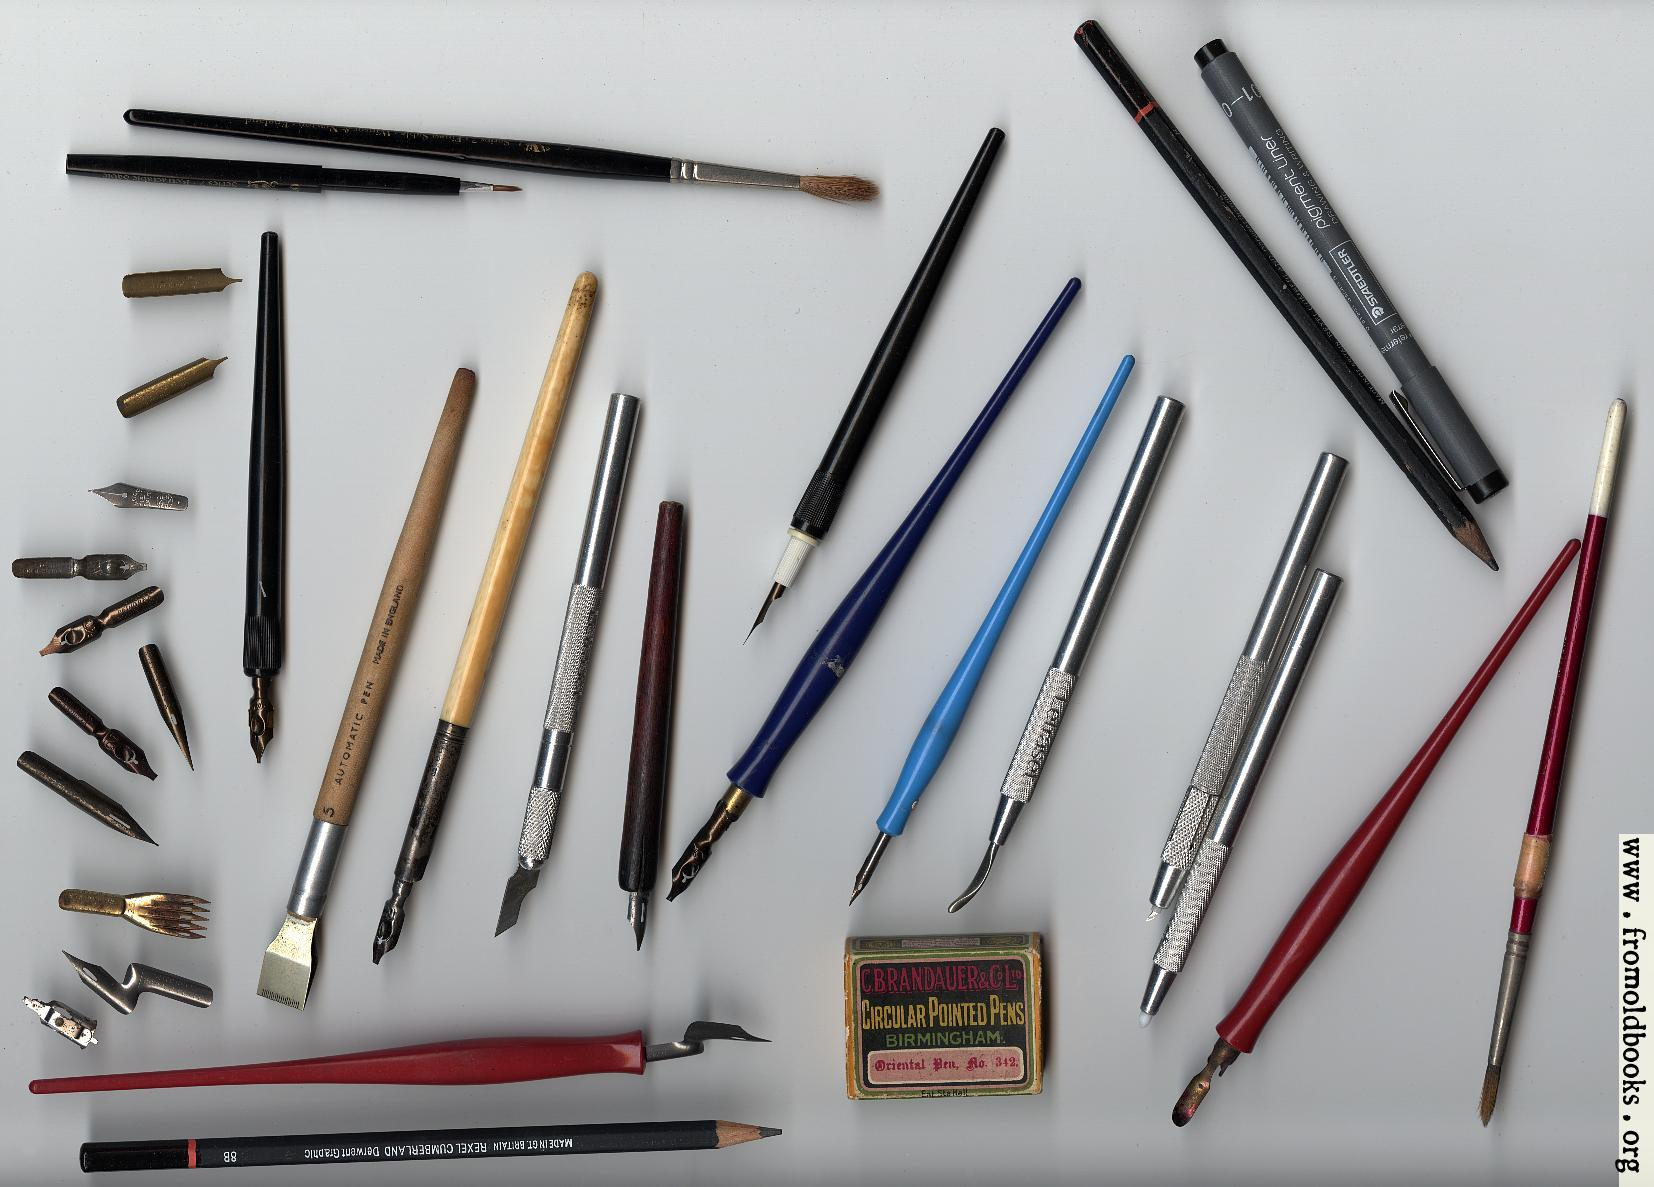 some tools for calligraphy image 500x359 pixels